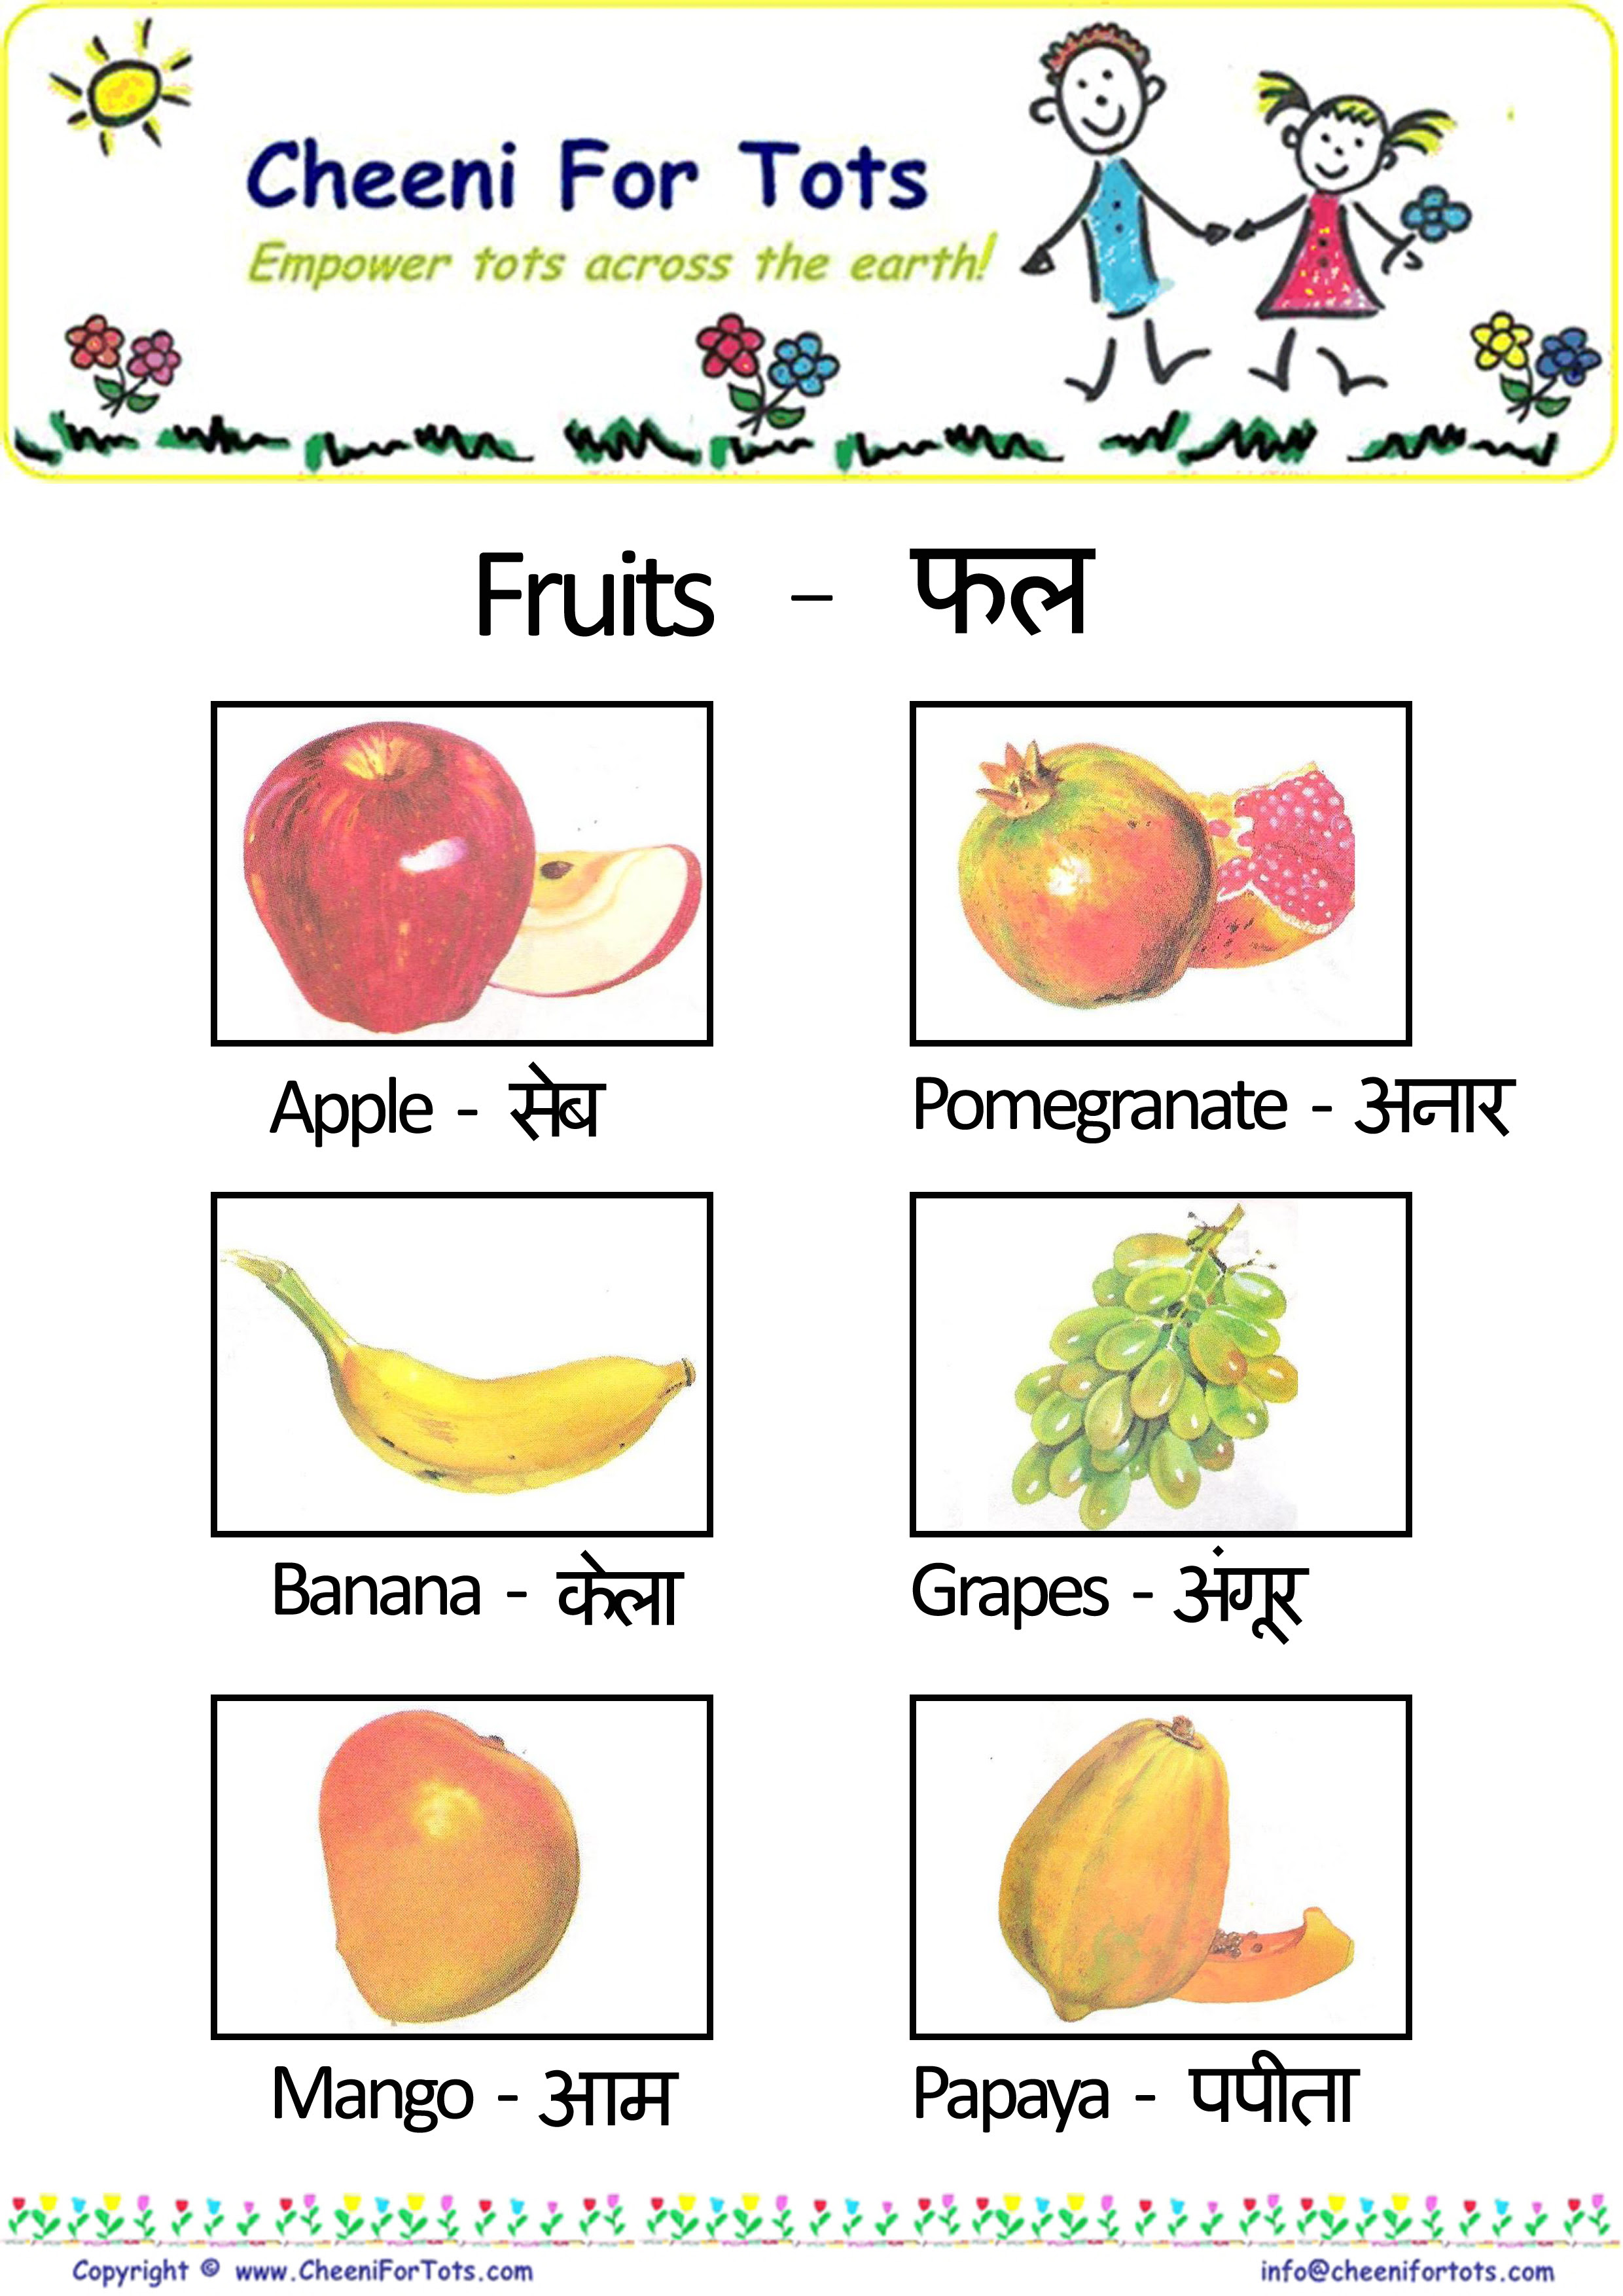 In Marathi Fruits Name — Pixlcorps